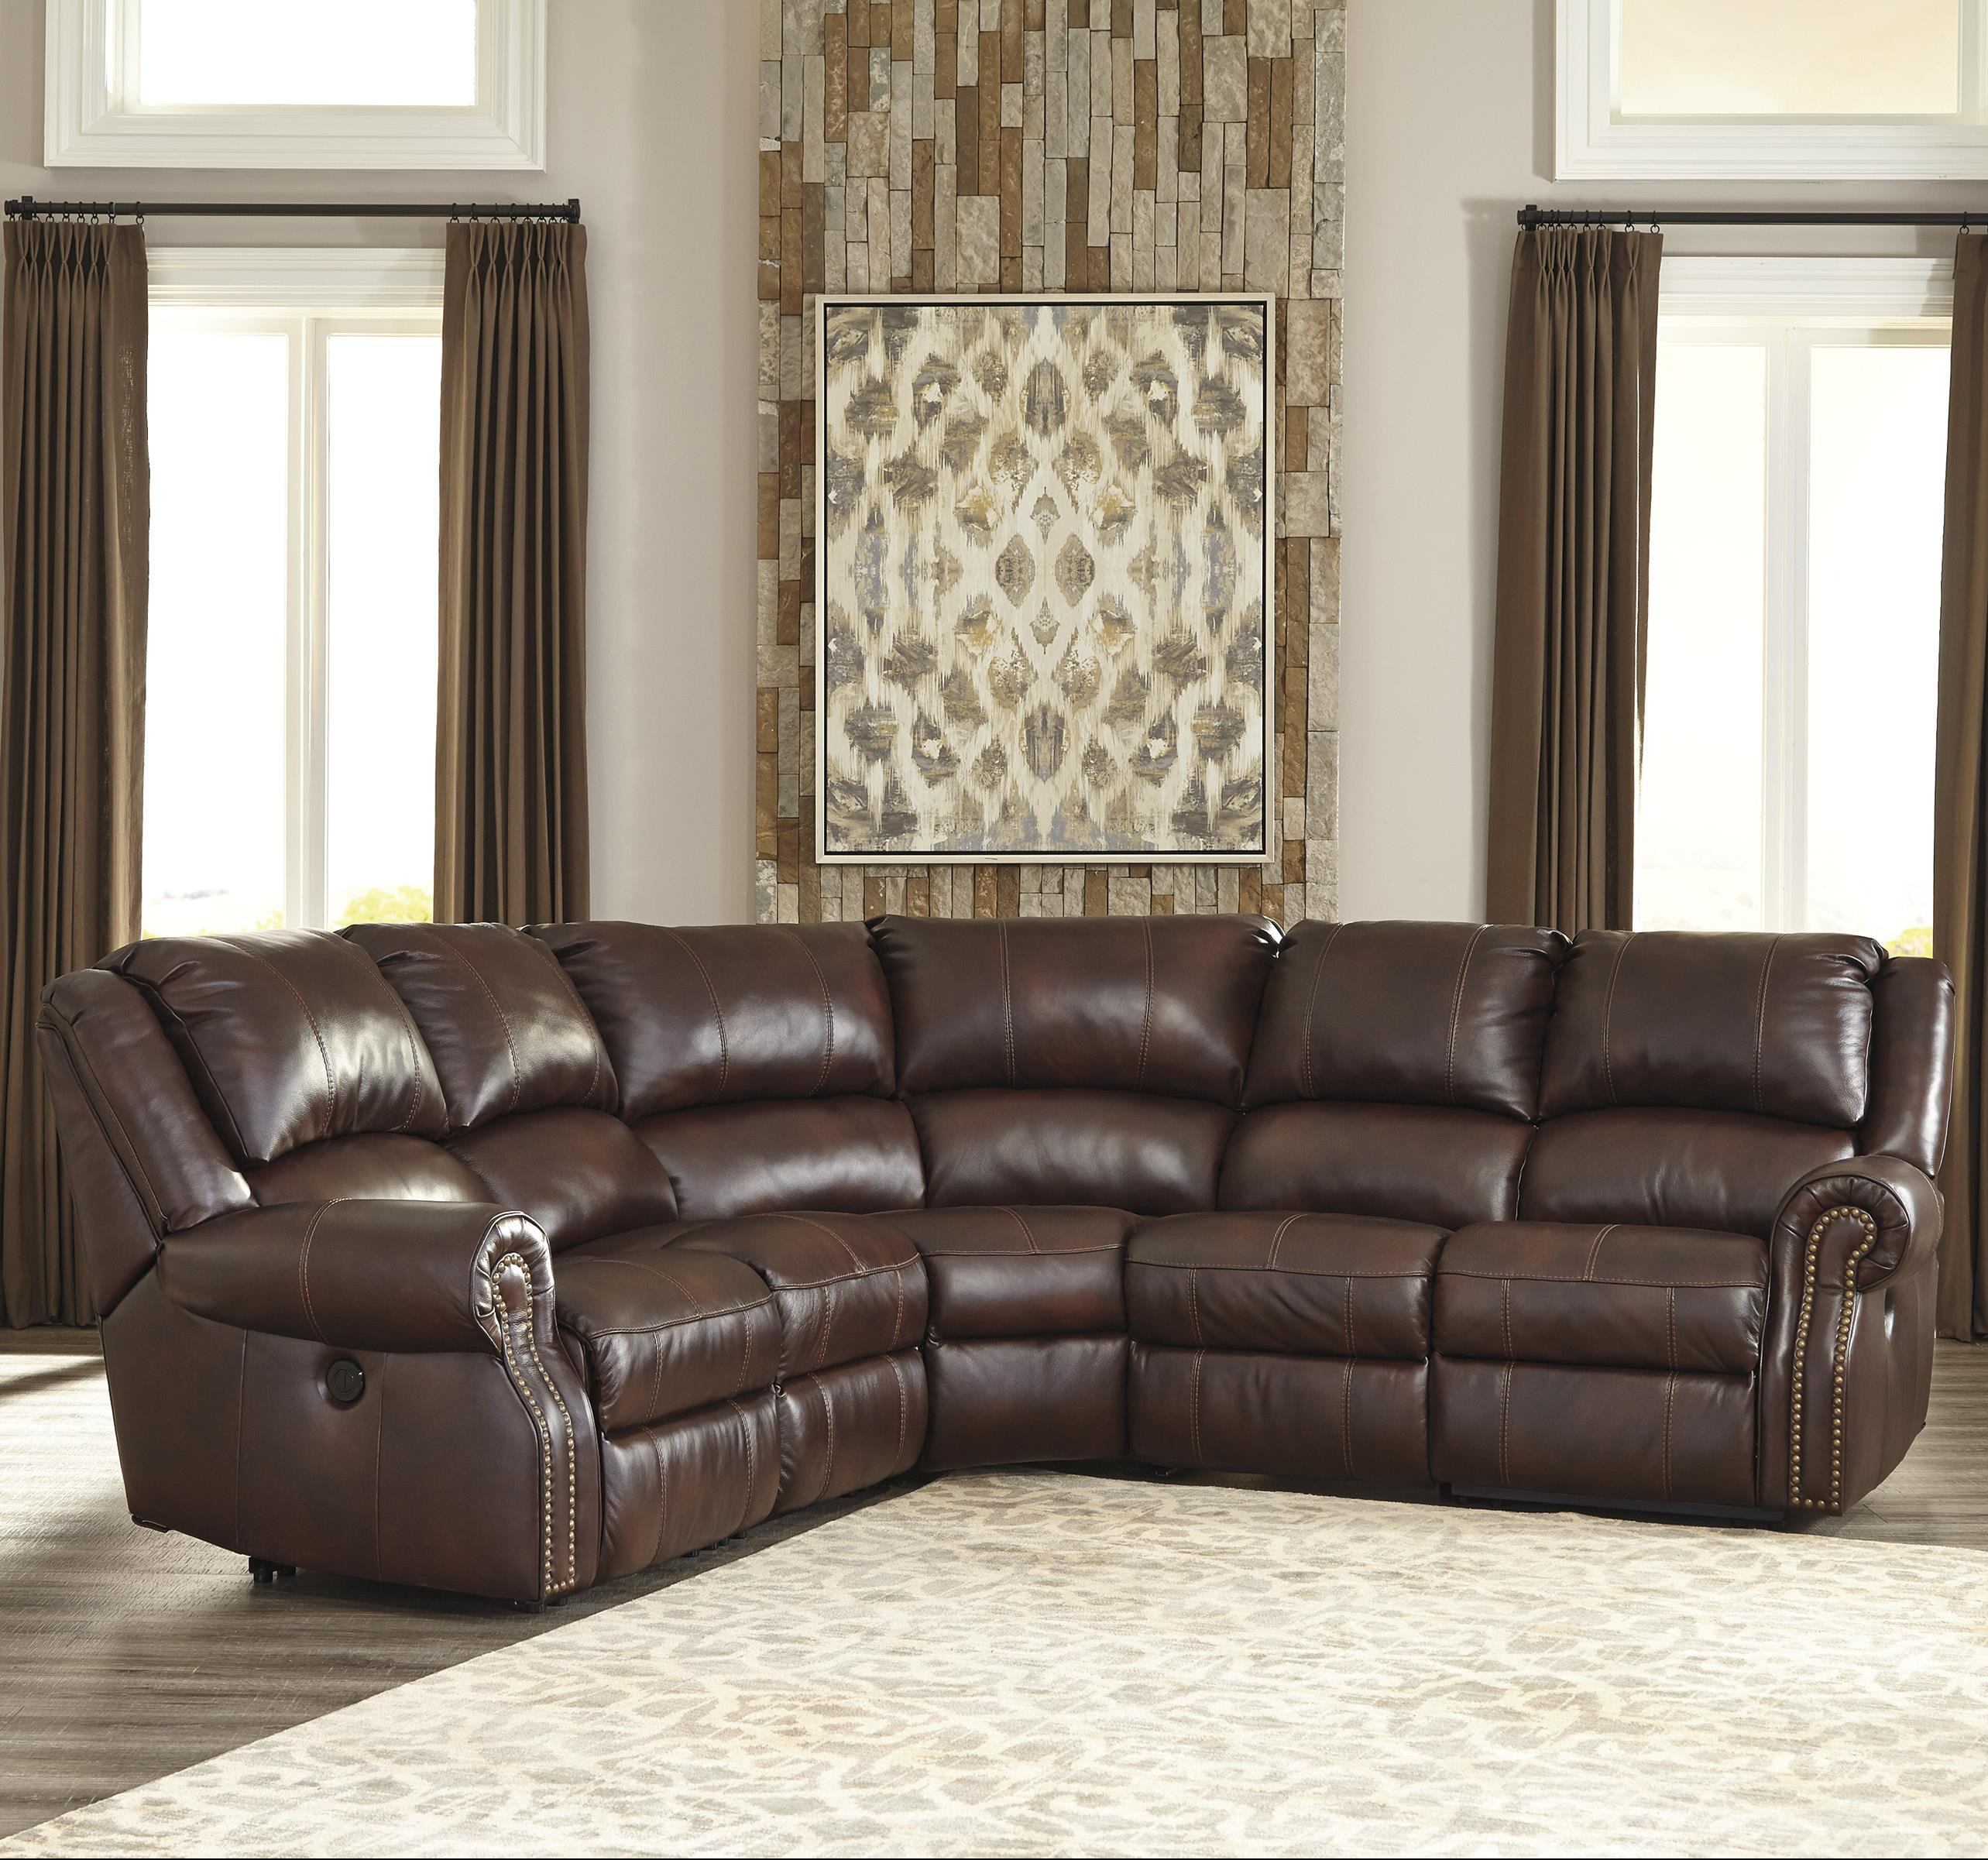 Signature Design by Ashley Collinsville 5Pc Recl. Sectional w/ 2 Armless Recliners - Item Number: U7210040+2x19+77+41